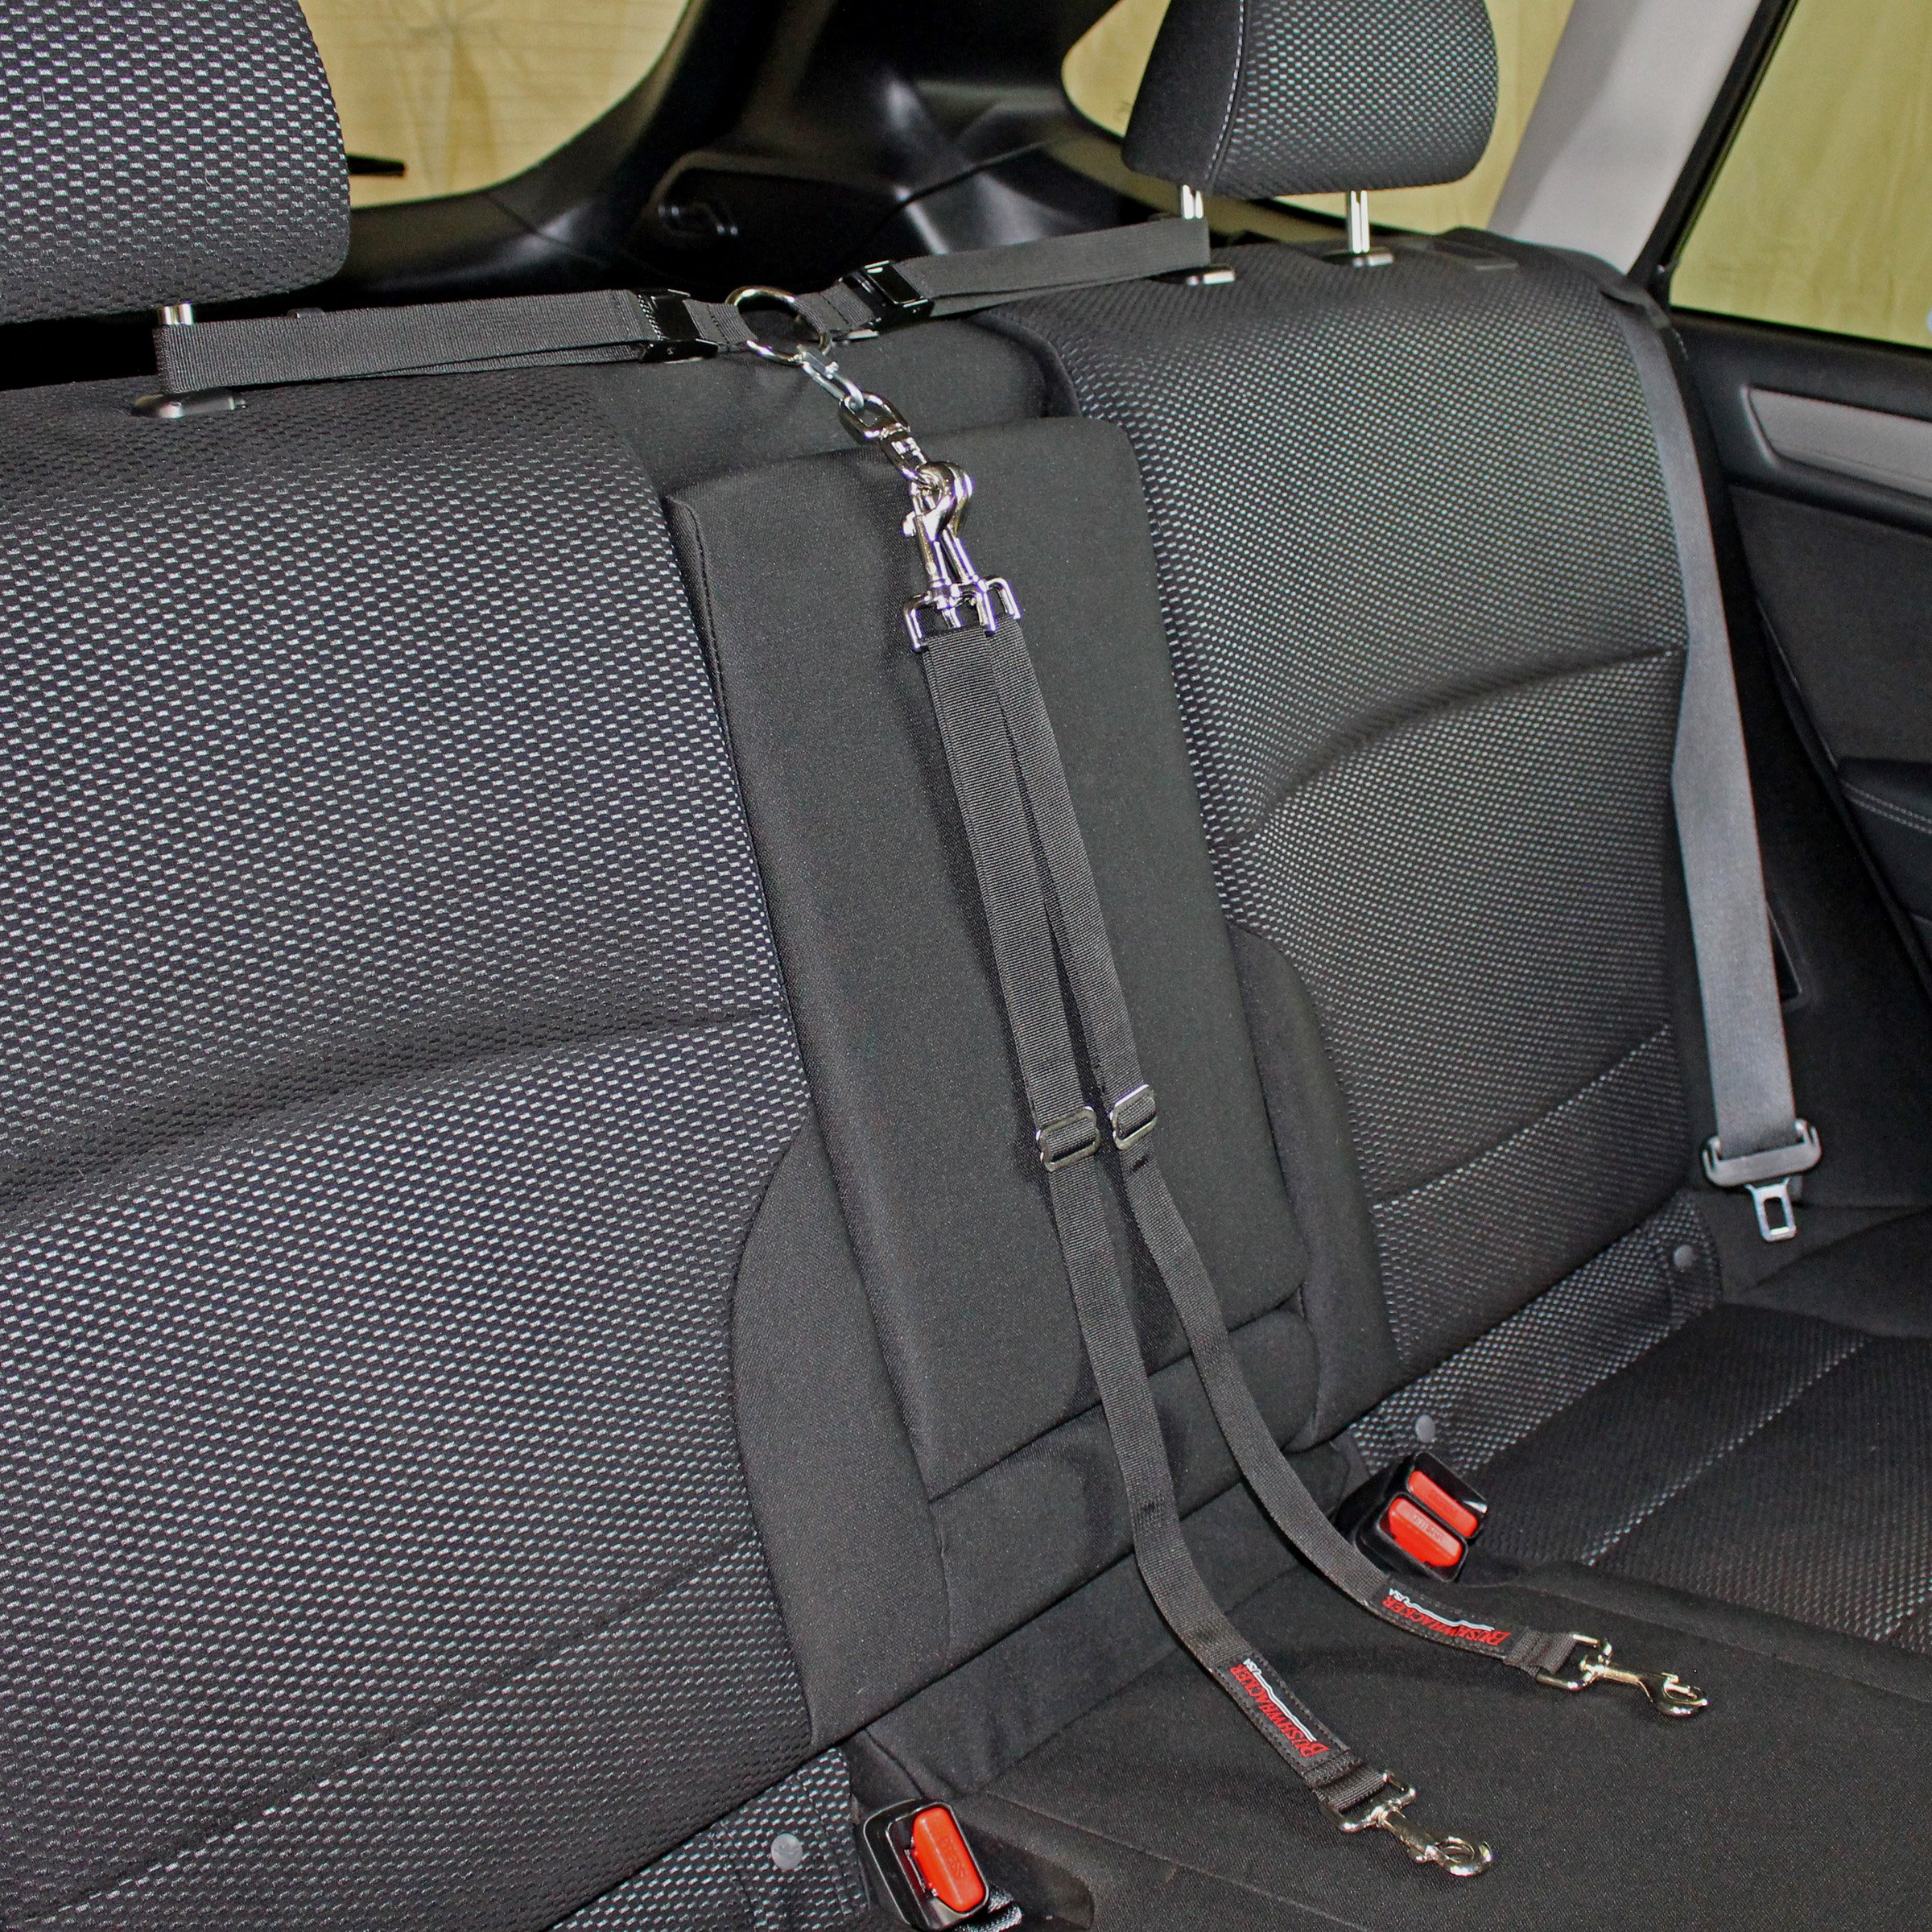 Bushwhacker - Paws n Claws Two Dog Tangle Free Tether Vehicle Adjustable Restraint K9 Backseat Leash Truck Seat Belt Split Double Lead Car Harness Pet Barrier SUV Carrier Extender Cover Tie Out Car 2